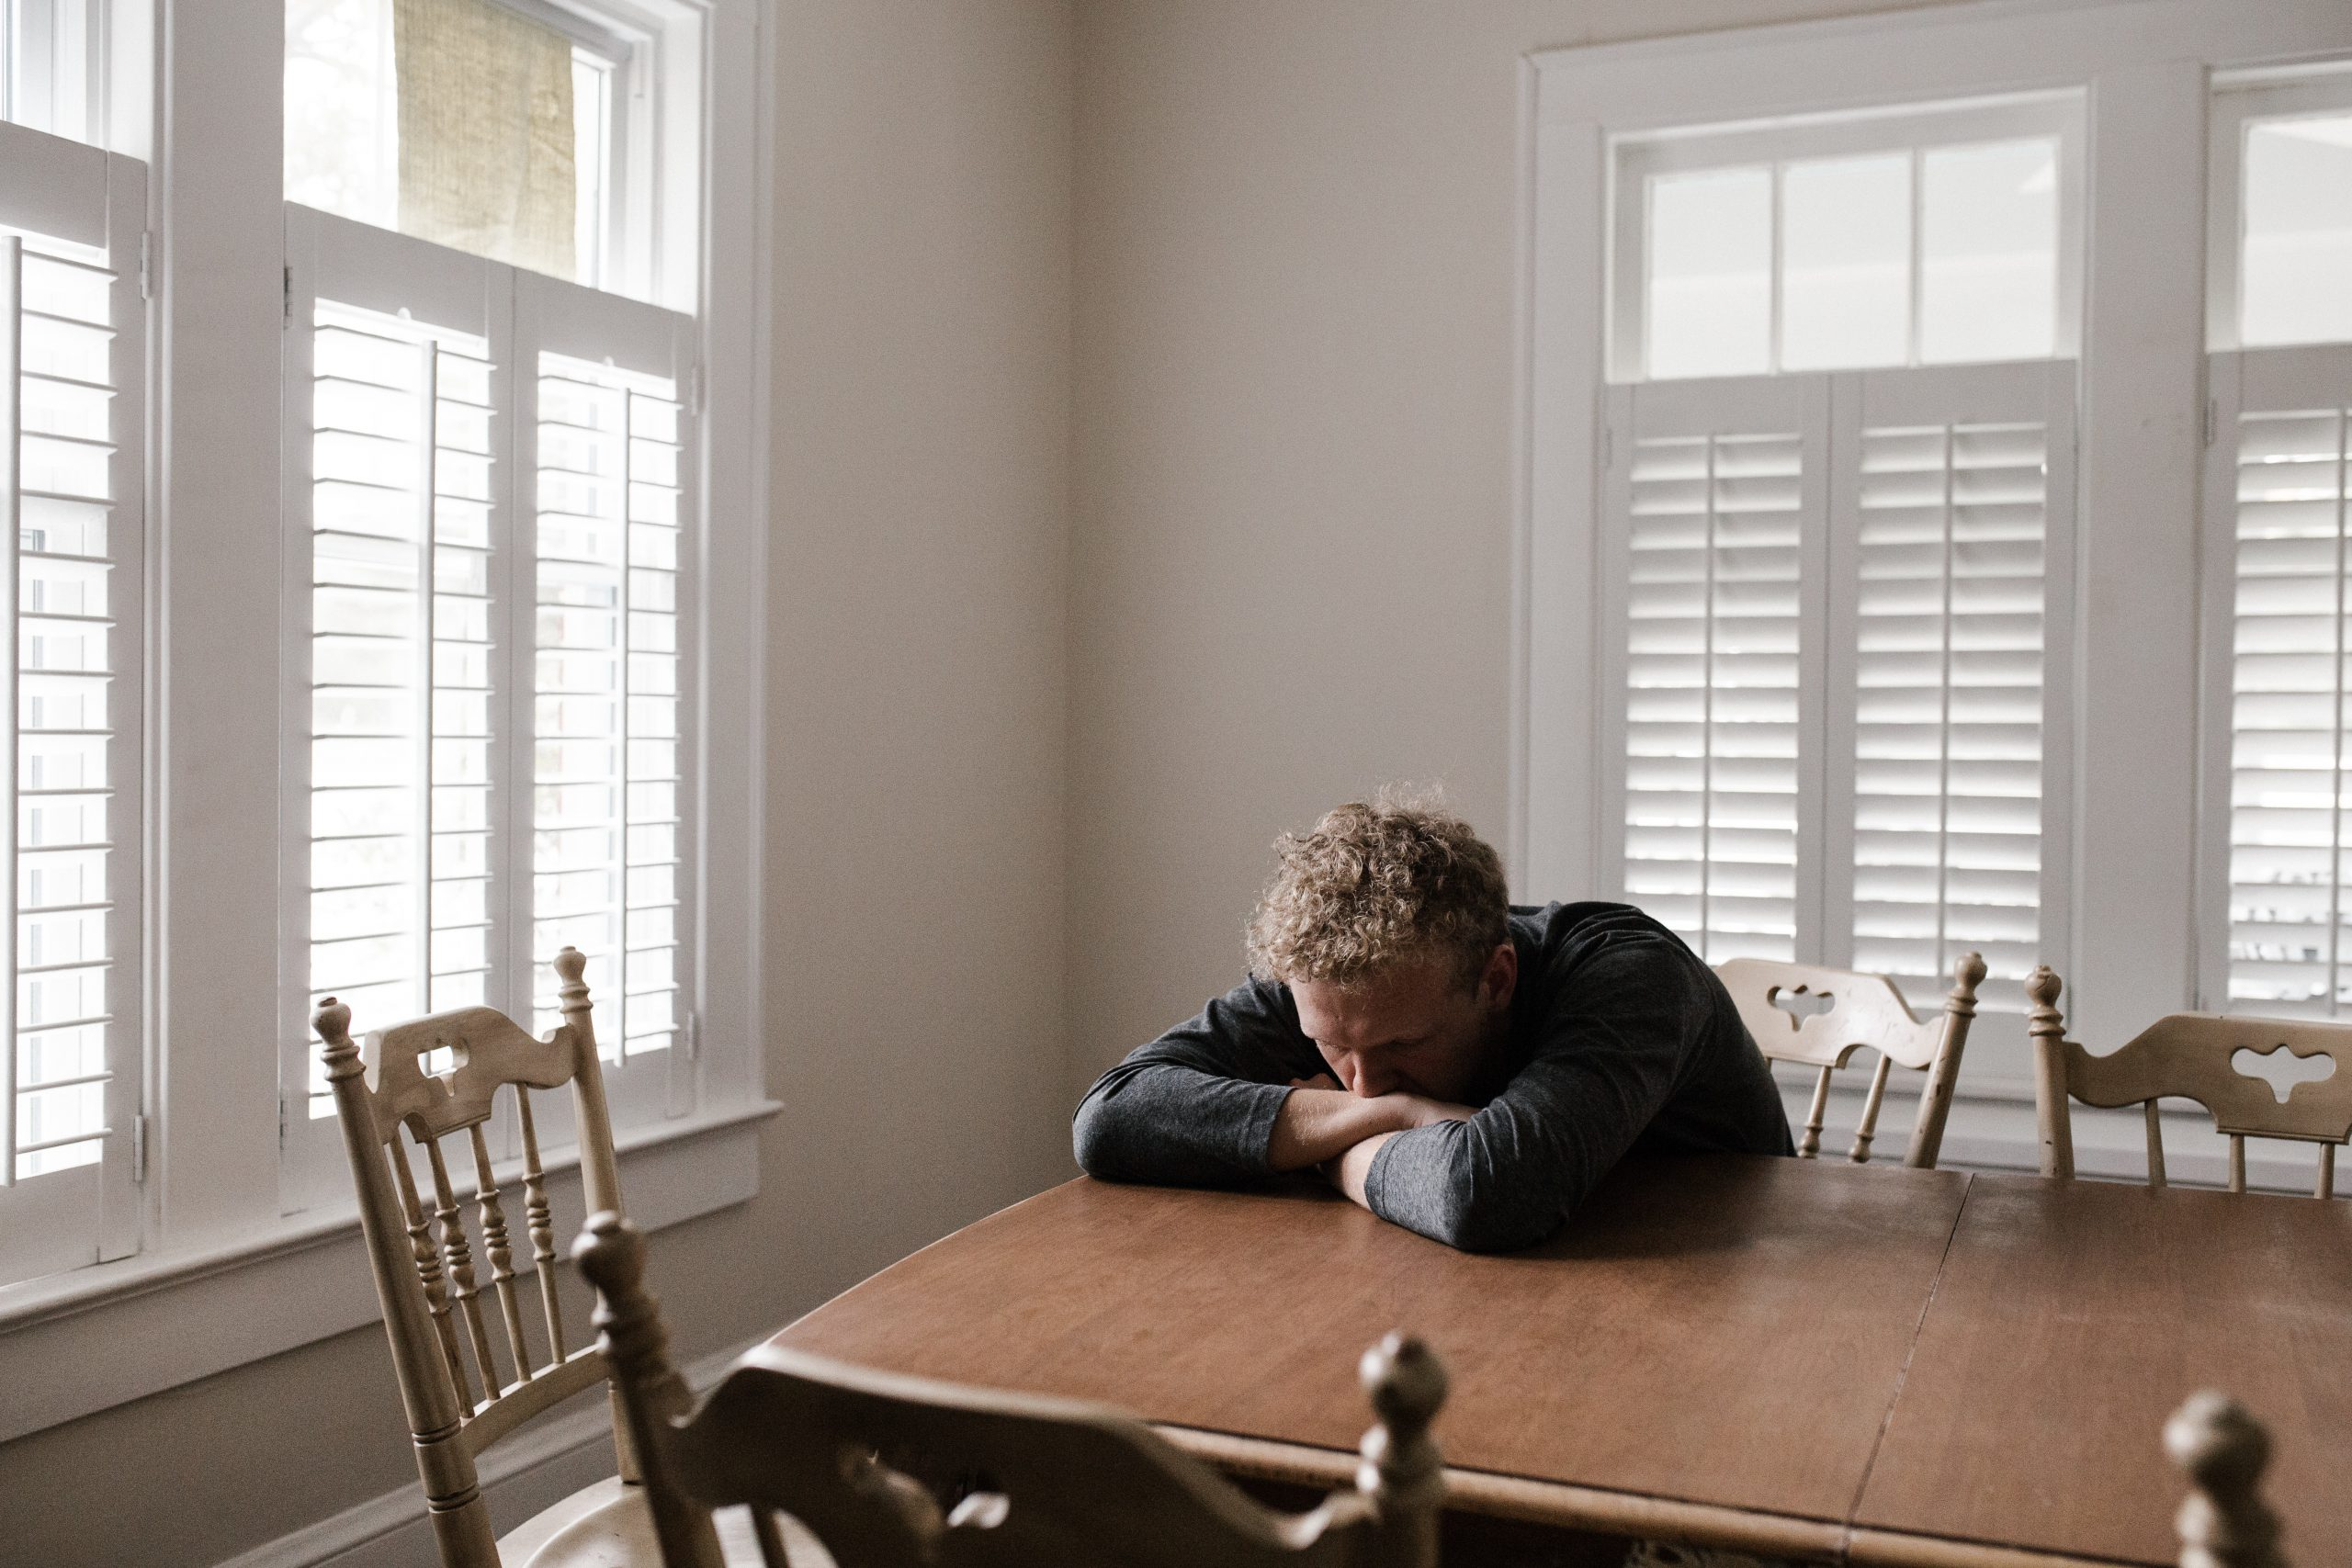 Man sitting down with head on table due to tiredness from stage 5 CKD